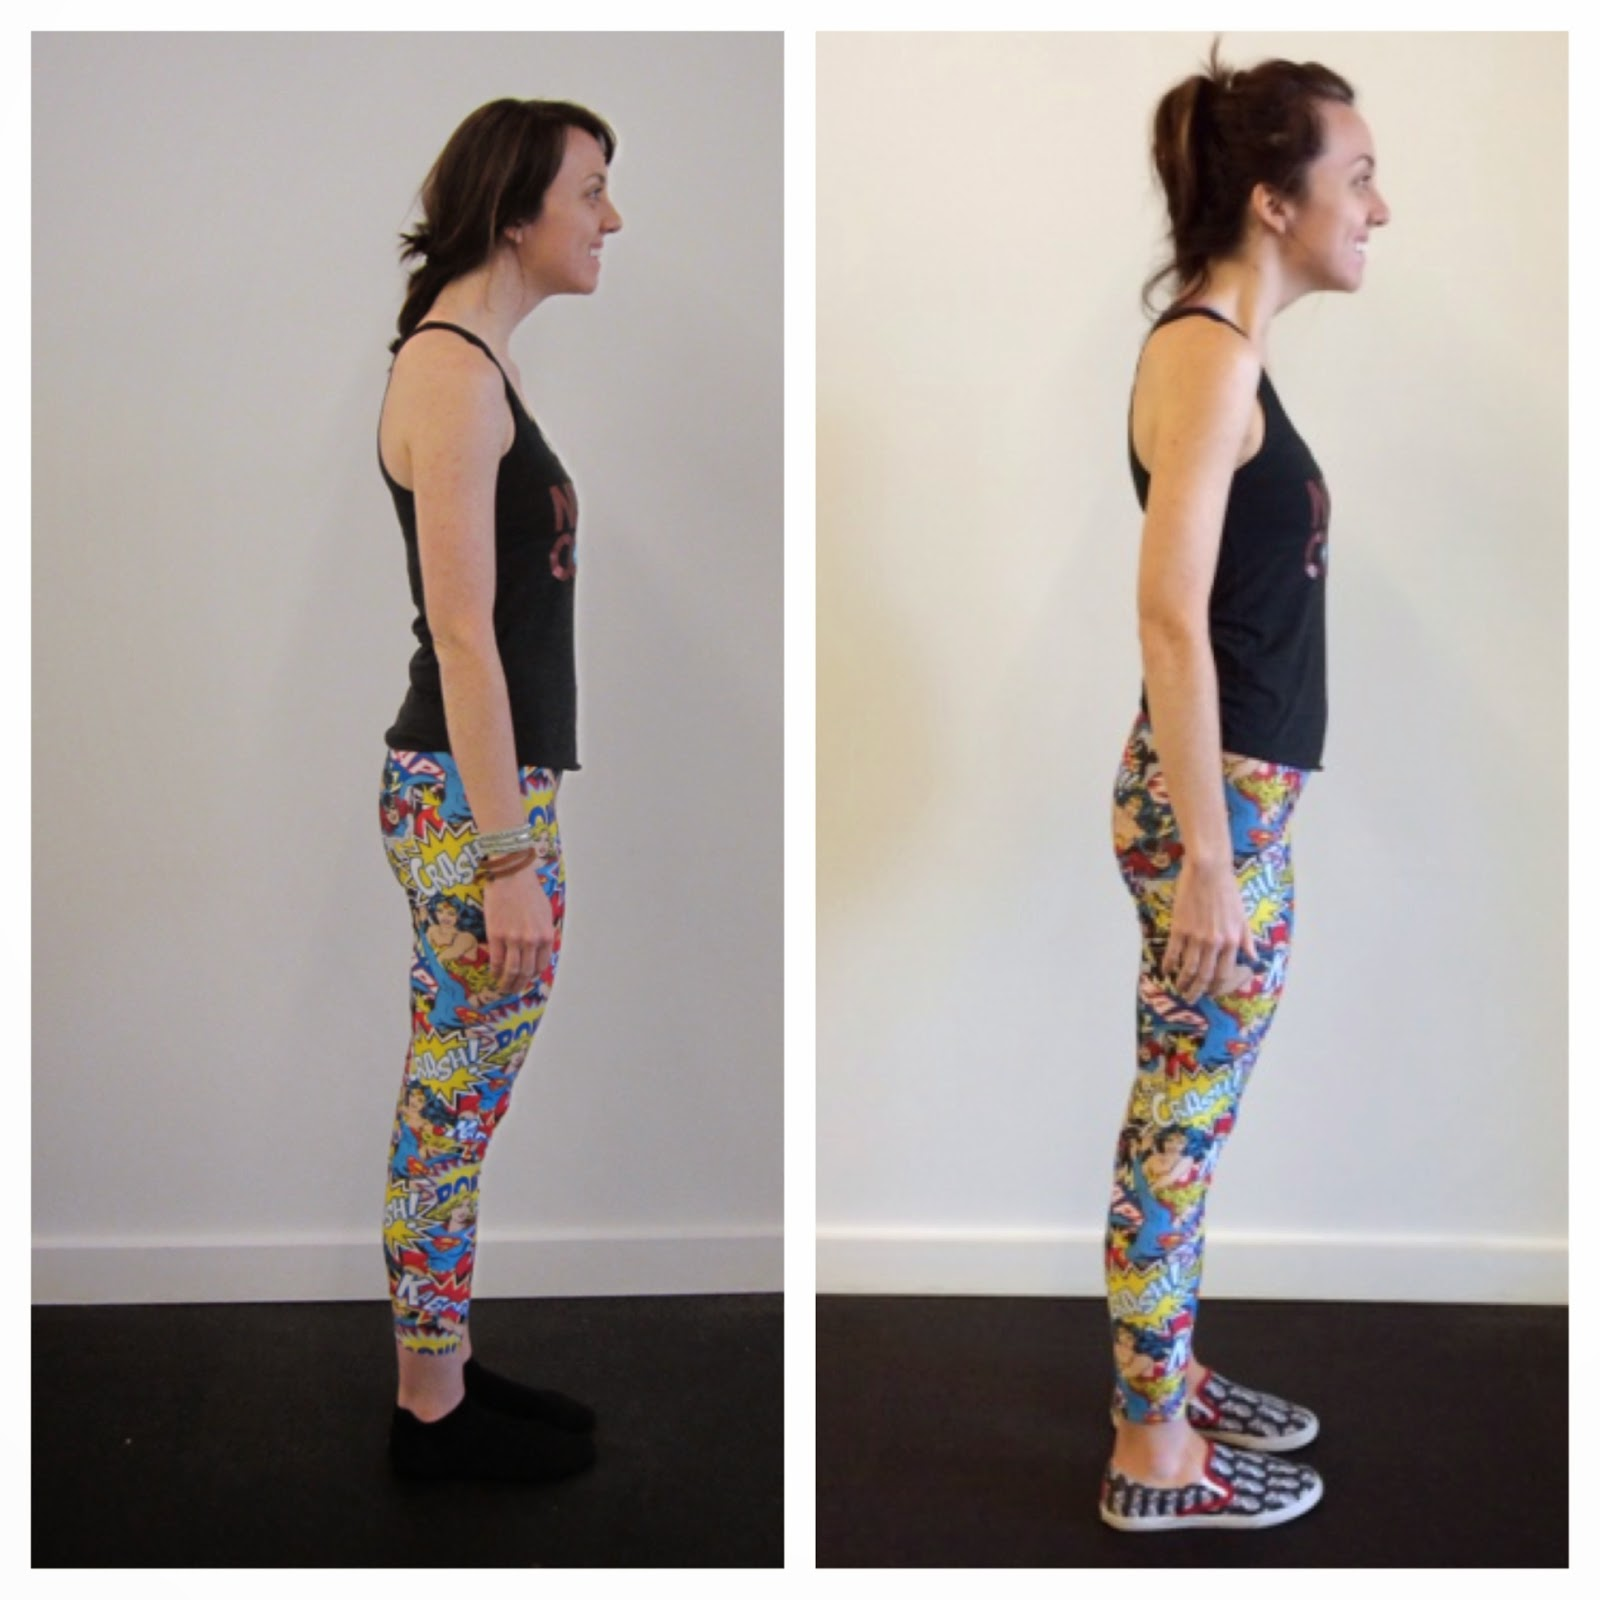 FlyBarre Challenge before and after